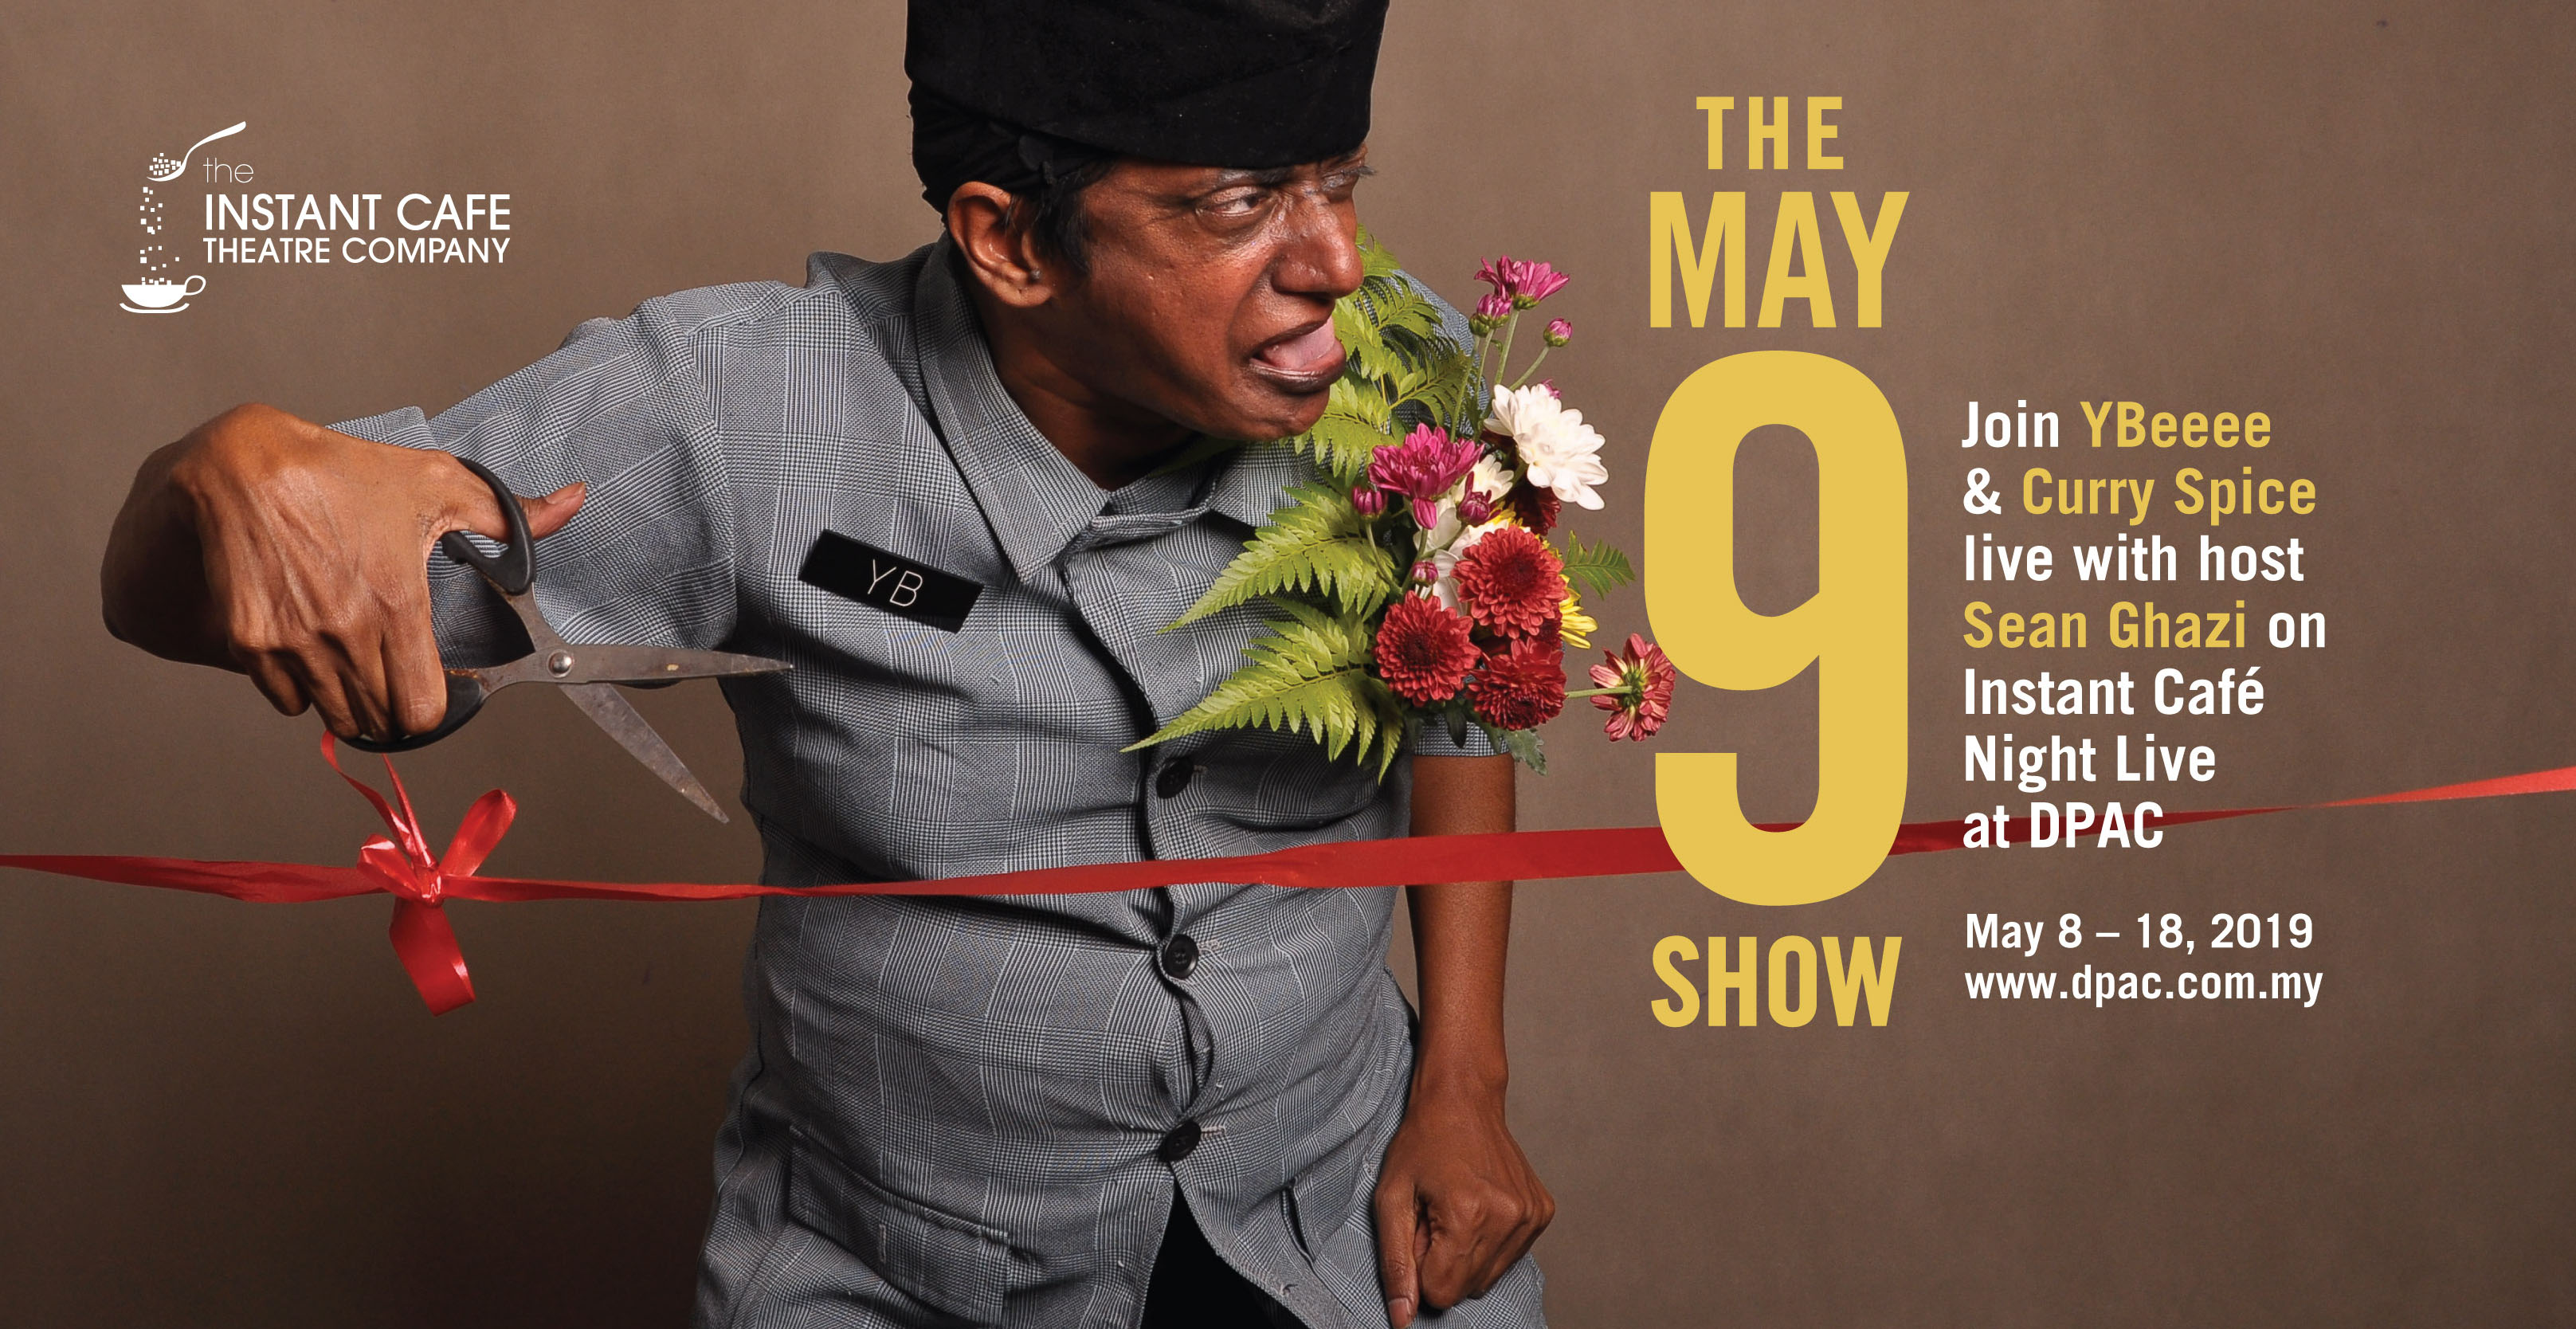 The May 9 Show